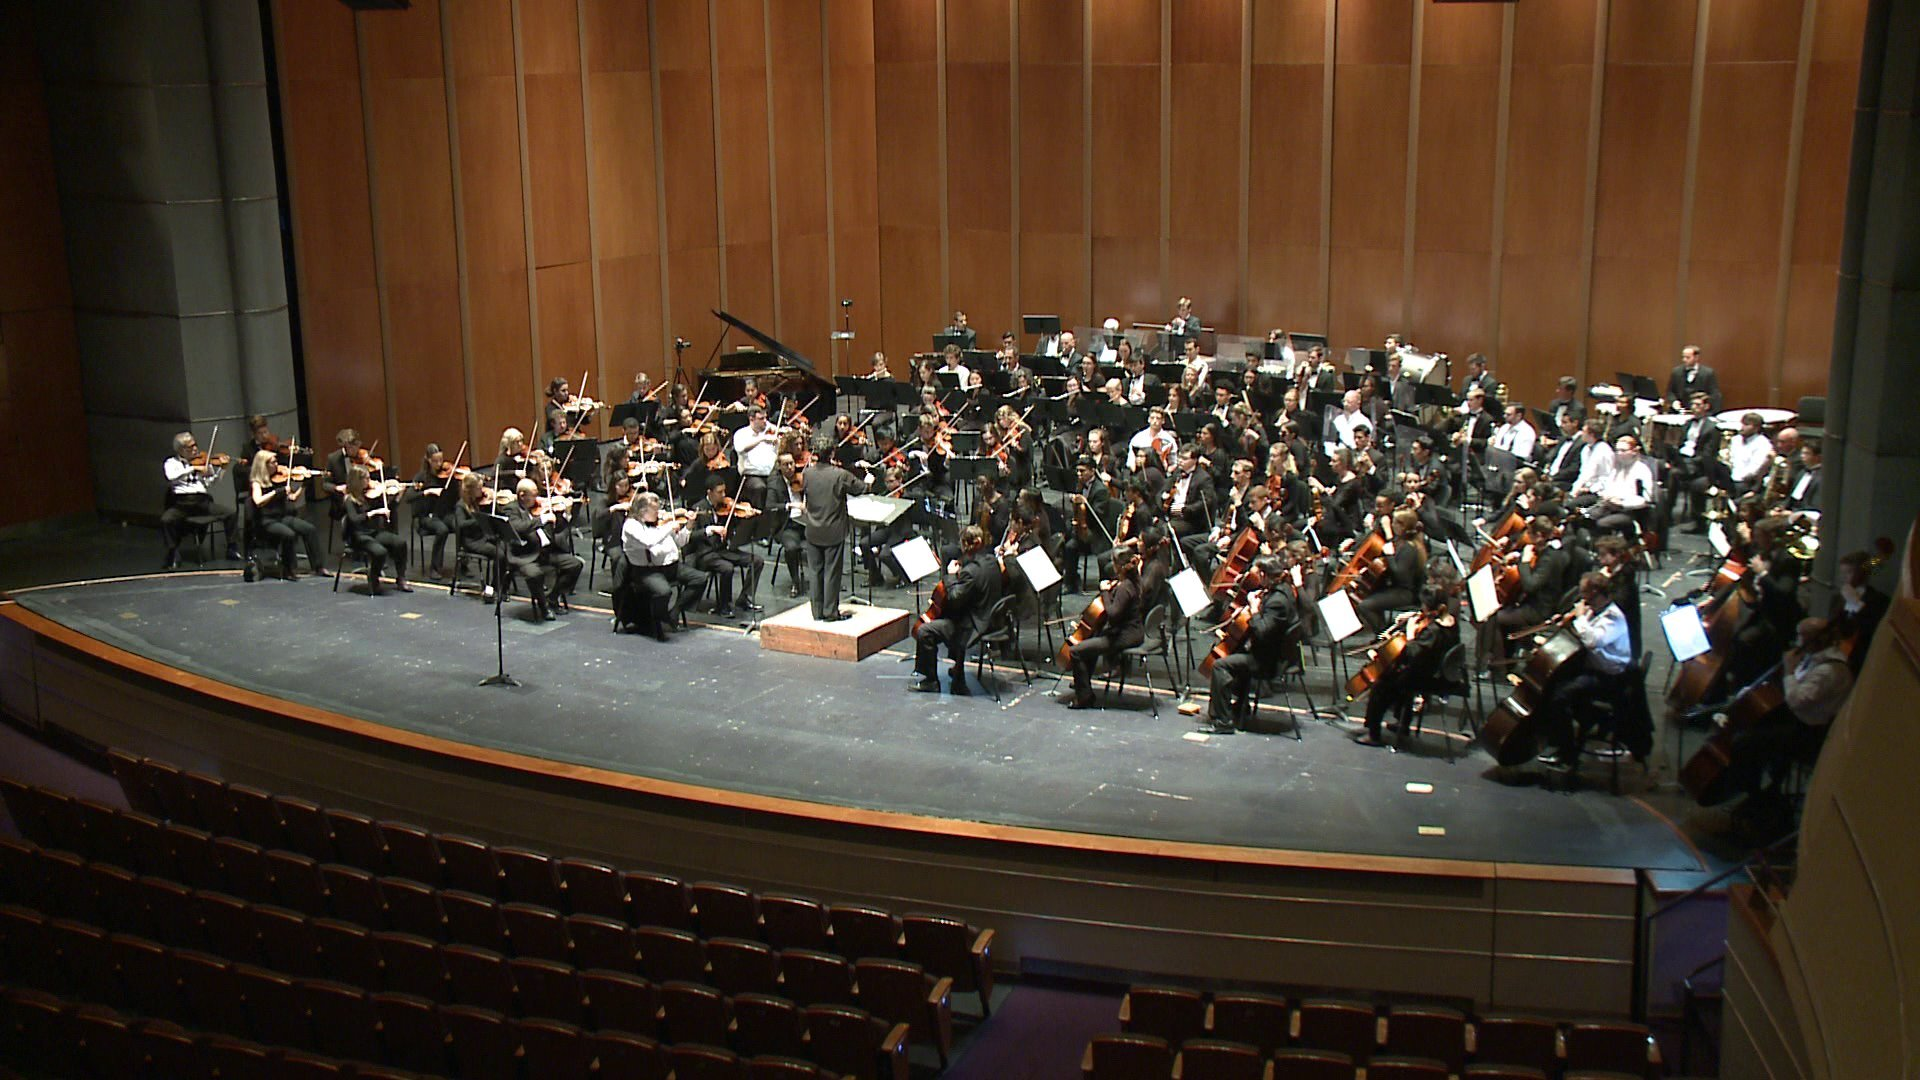 Photos: Local students perform with Virginia Symphony at Sandler Center, continuing 20-yeartradition